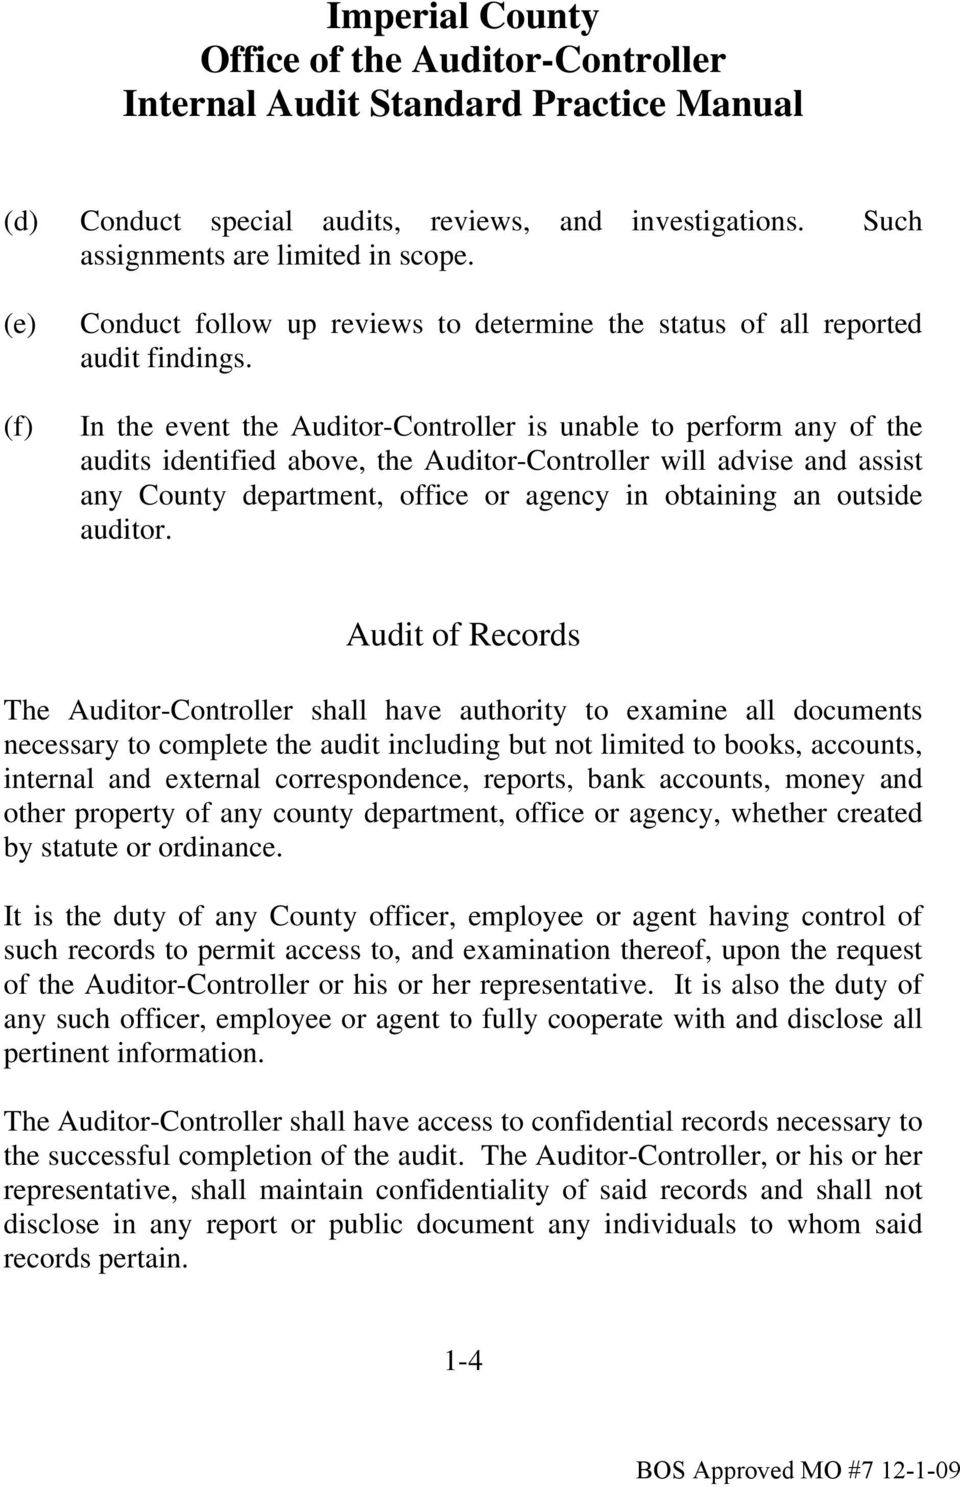 In the event the Auditor-Controller is unable to perform any of the audits identified above, the Auditor-Controller will advise and assist any County department, office or agency in obtaining an